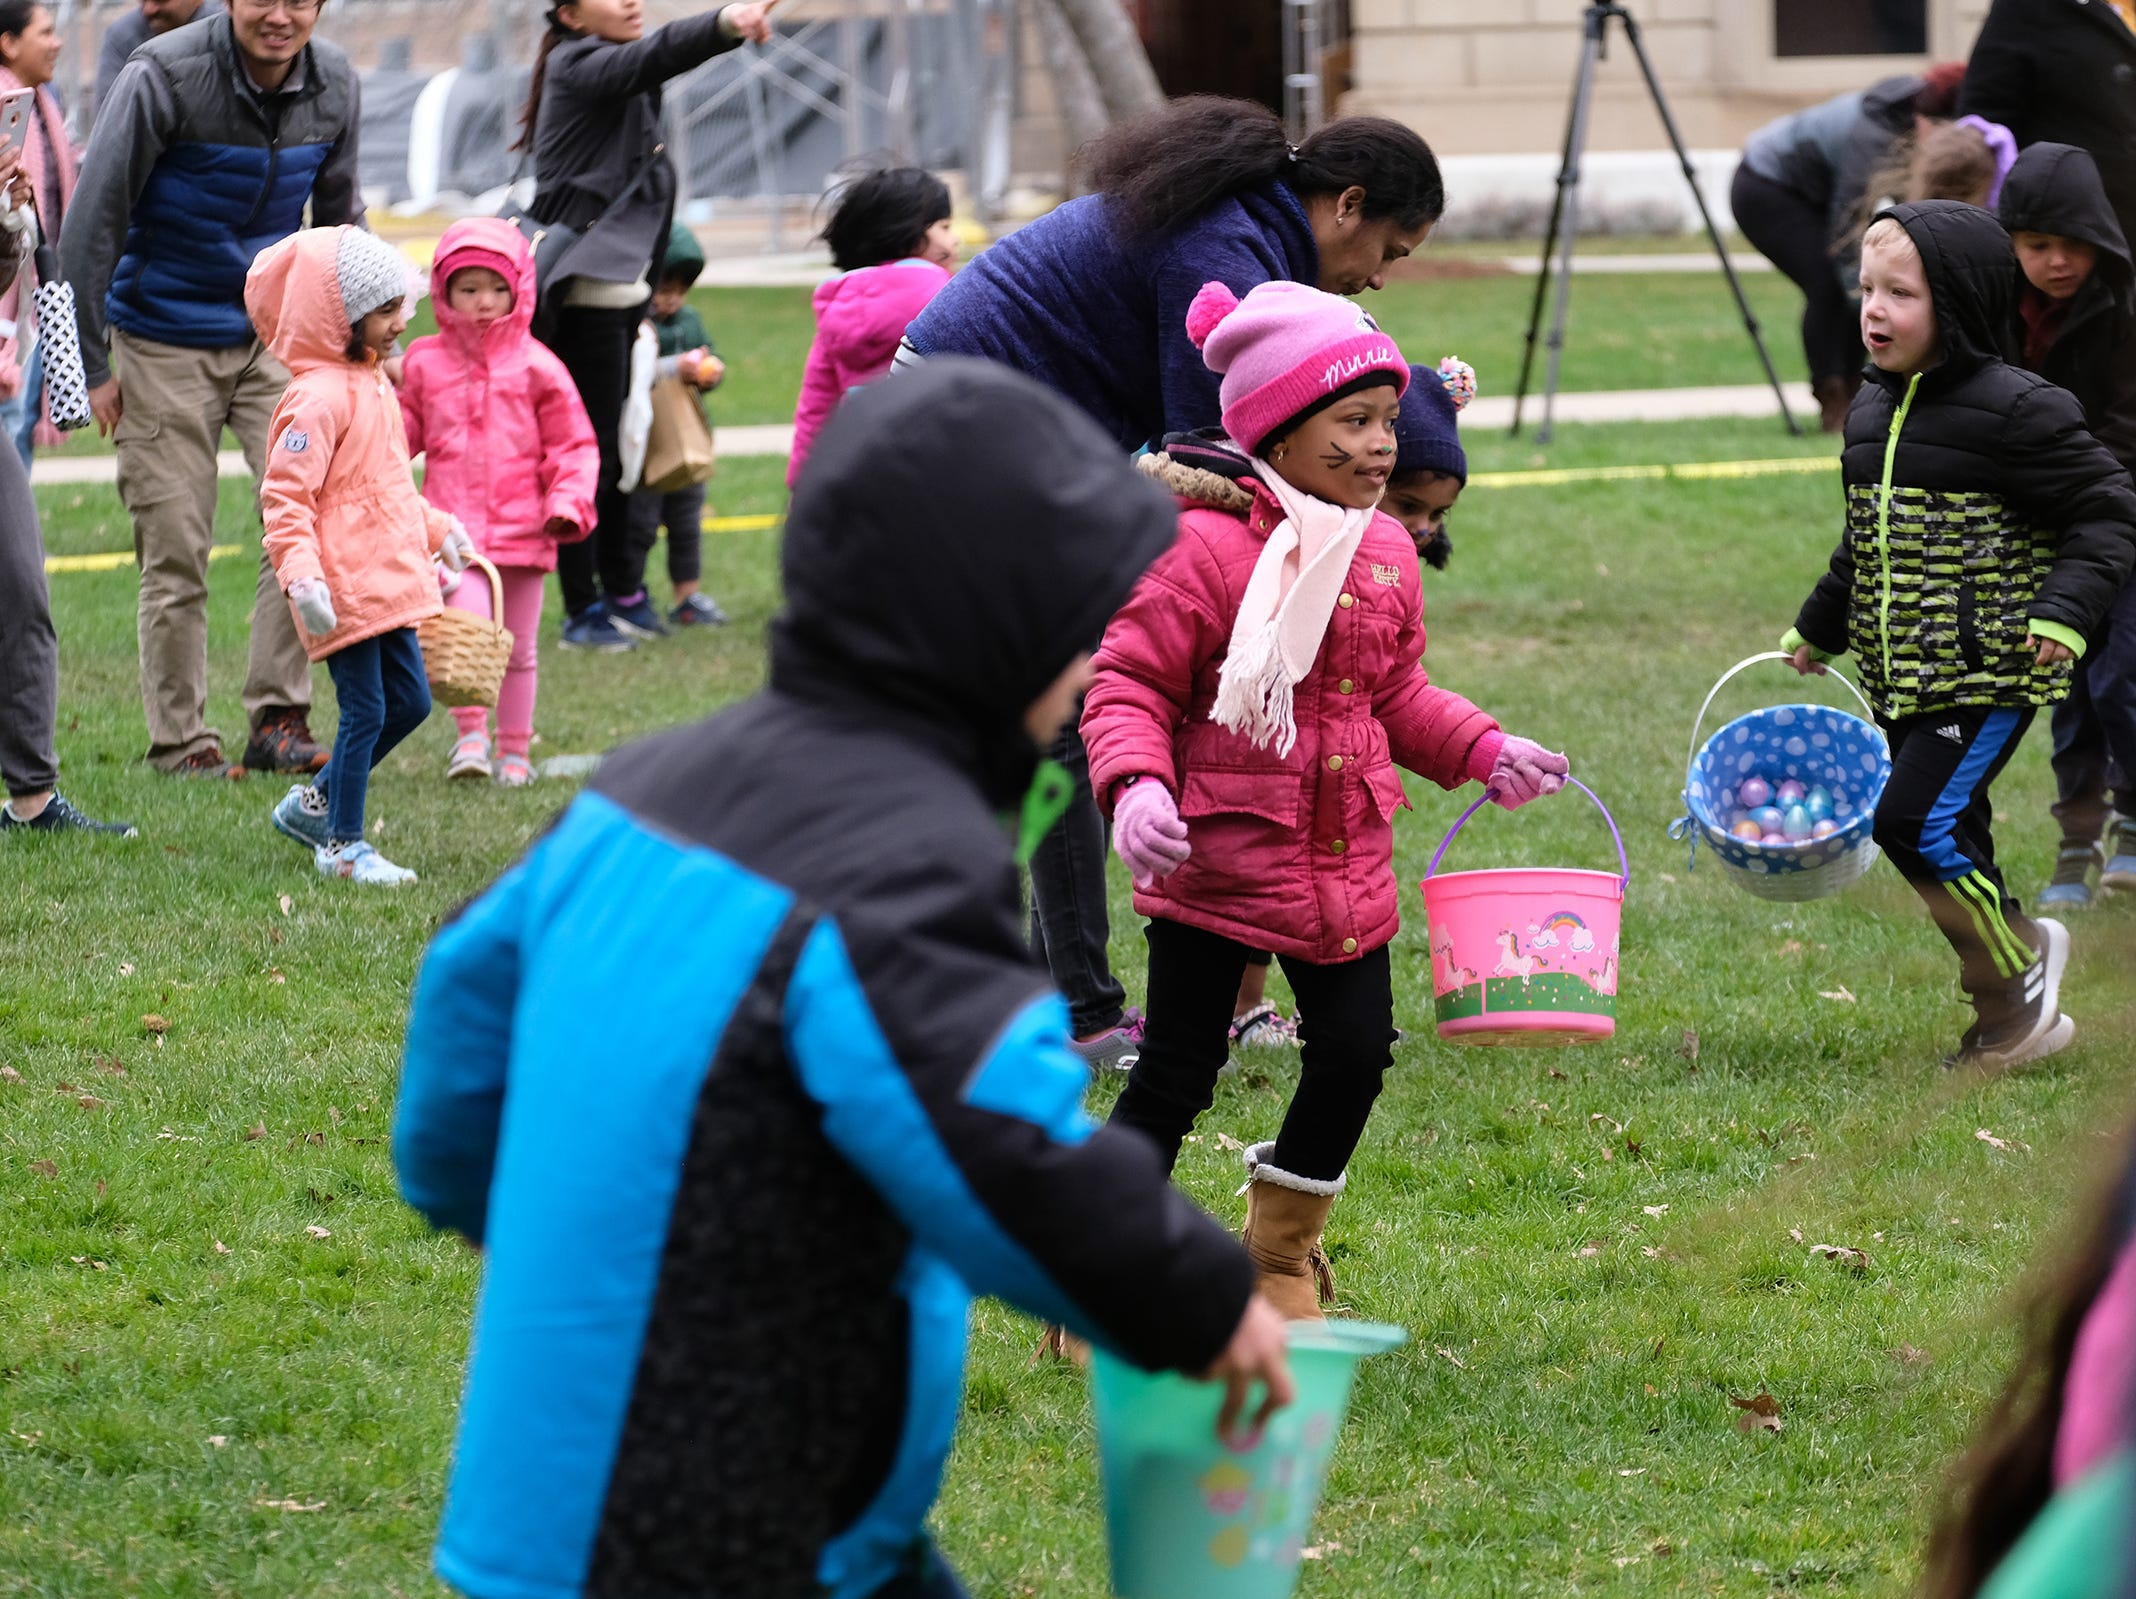 The scramble is on at the annual Lansing Jaycees Easter Egg Hunt at the Capitol Saturday, April 20, 2019.